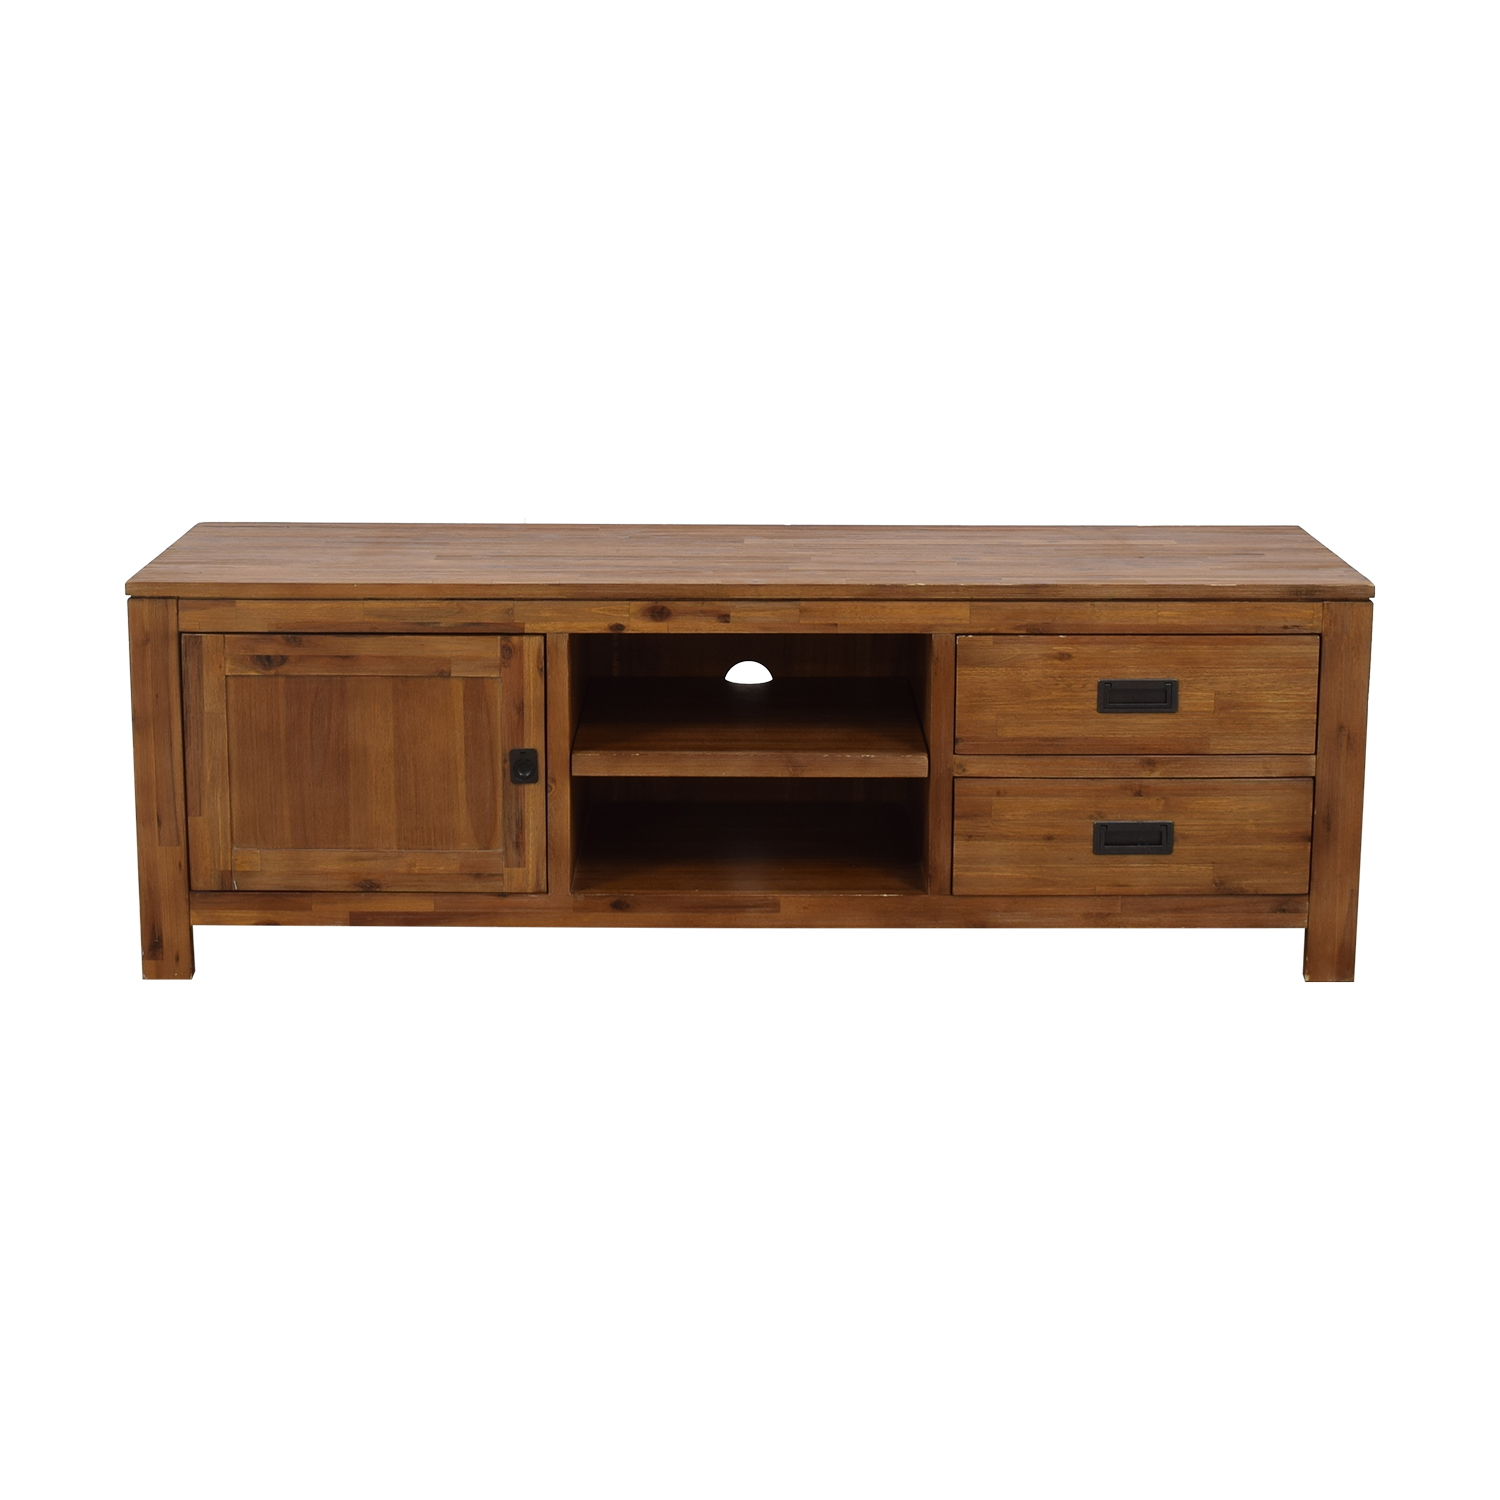 CasaMode Plasma Console with Storage sale